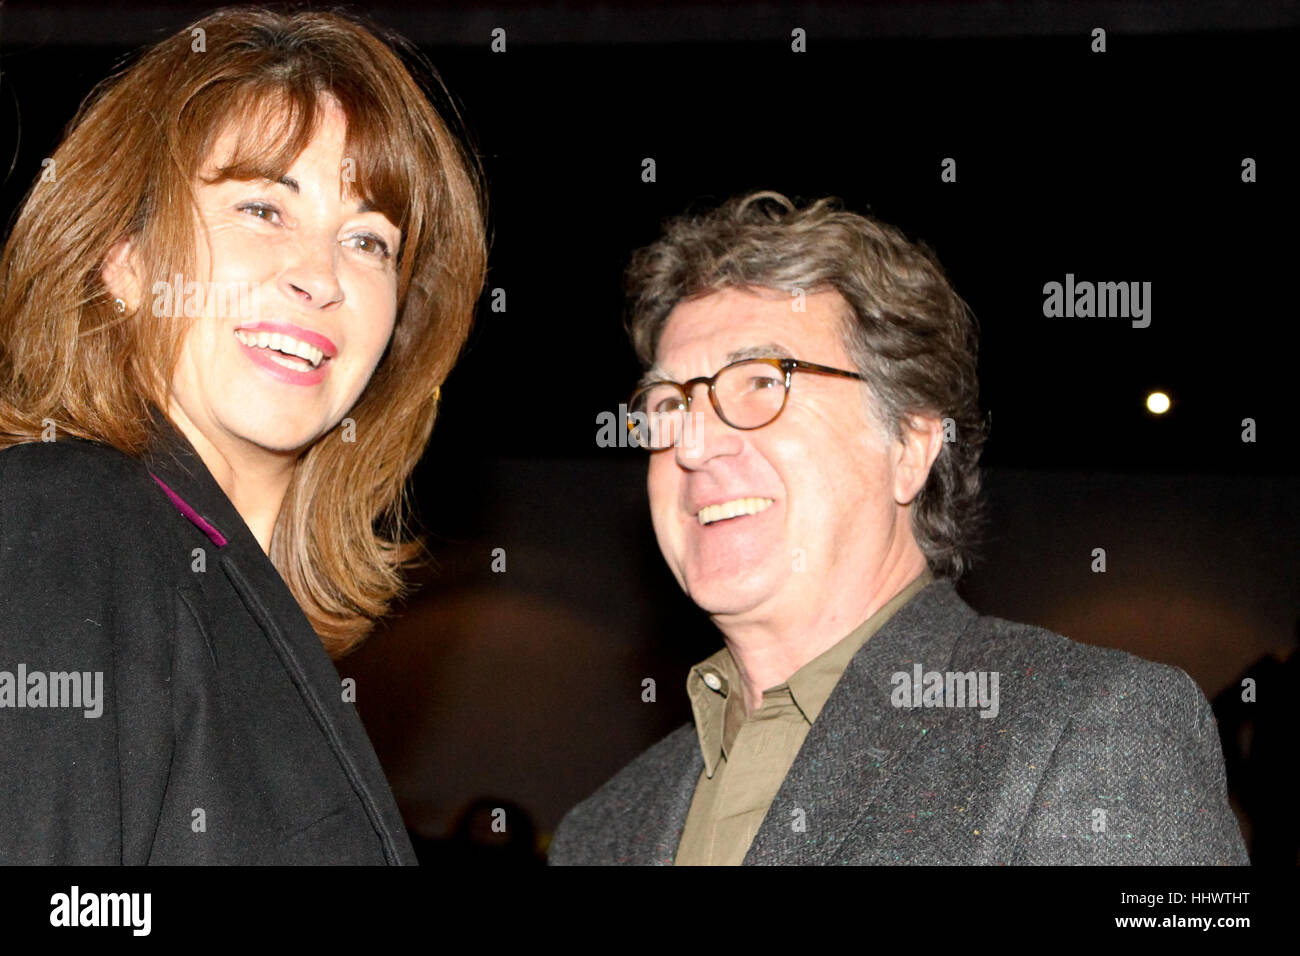 """Francois Cluzet and his wife Narjiss Slaoui-Falcoz attend the premiere of the Greek film """"Eteros Ego"""". Francois Cluzet participates in this film. Stock Photo"""